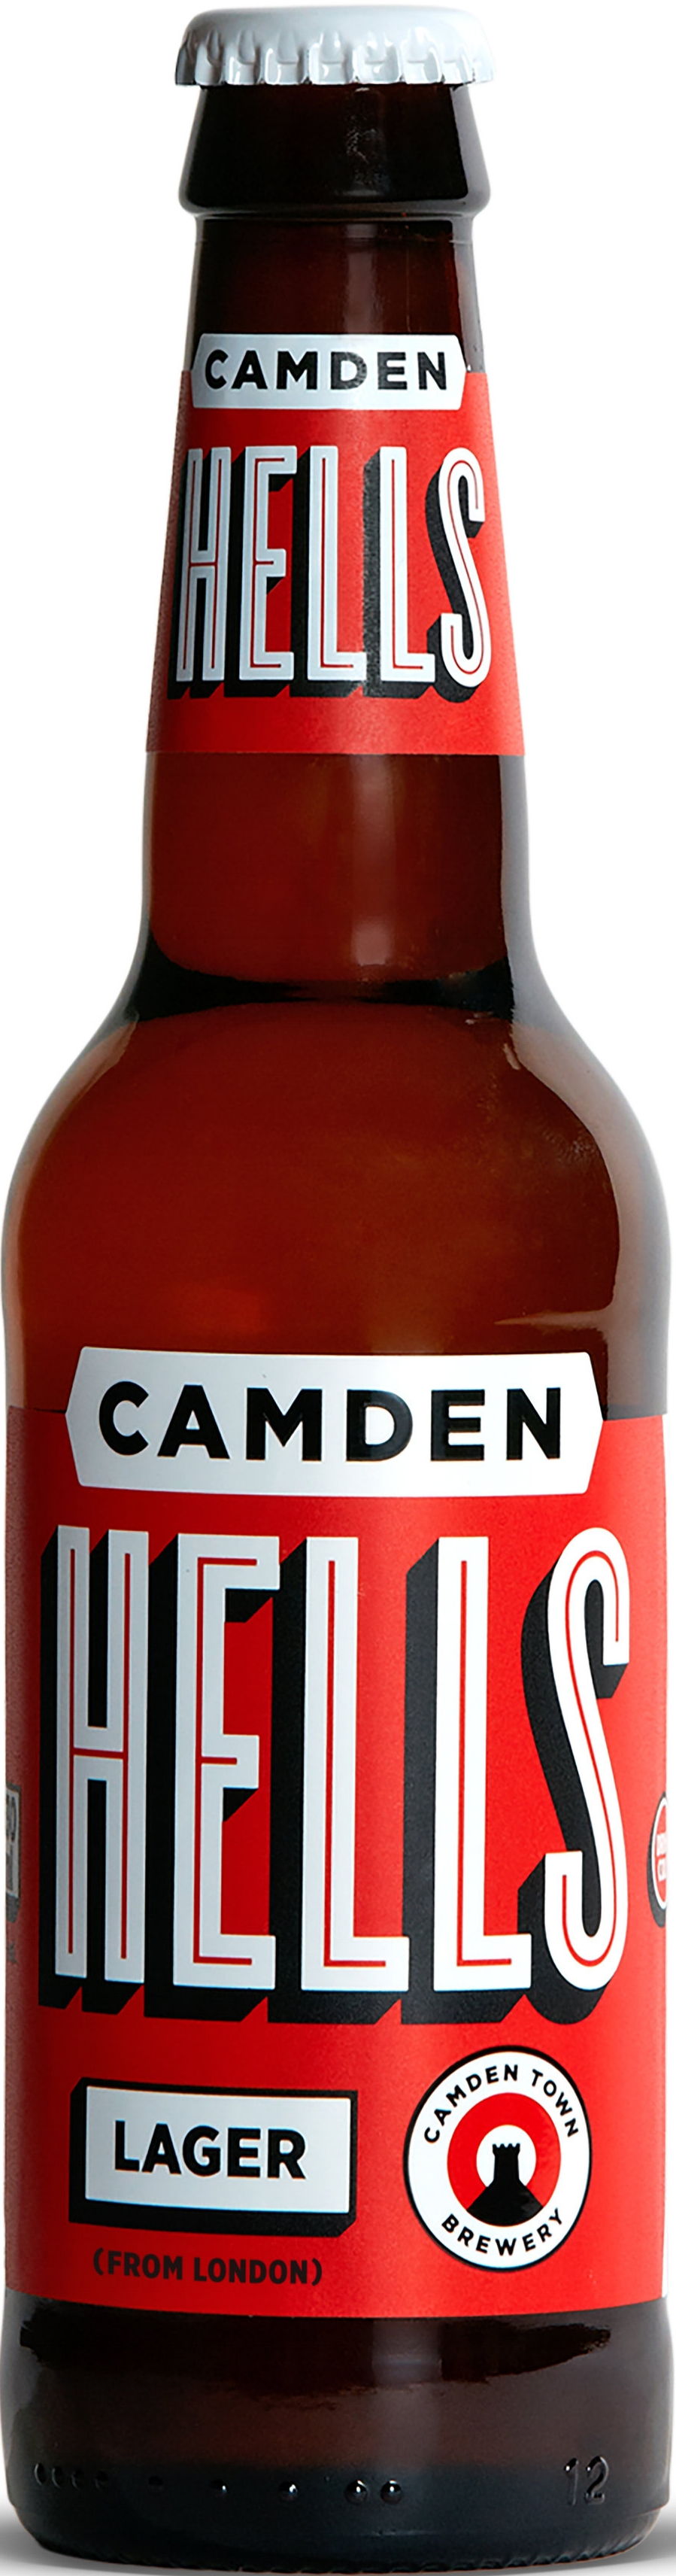 Camden Hells Lager, $14.99 for 6 Pack